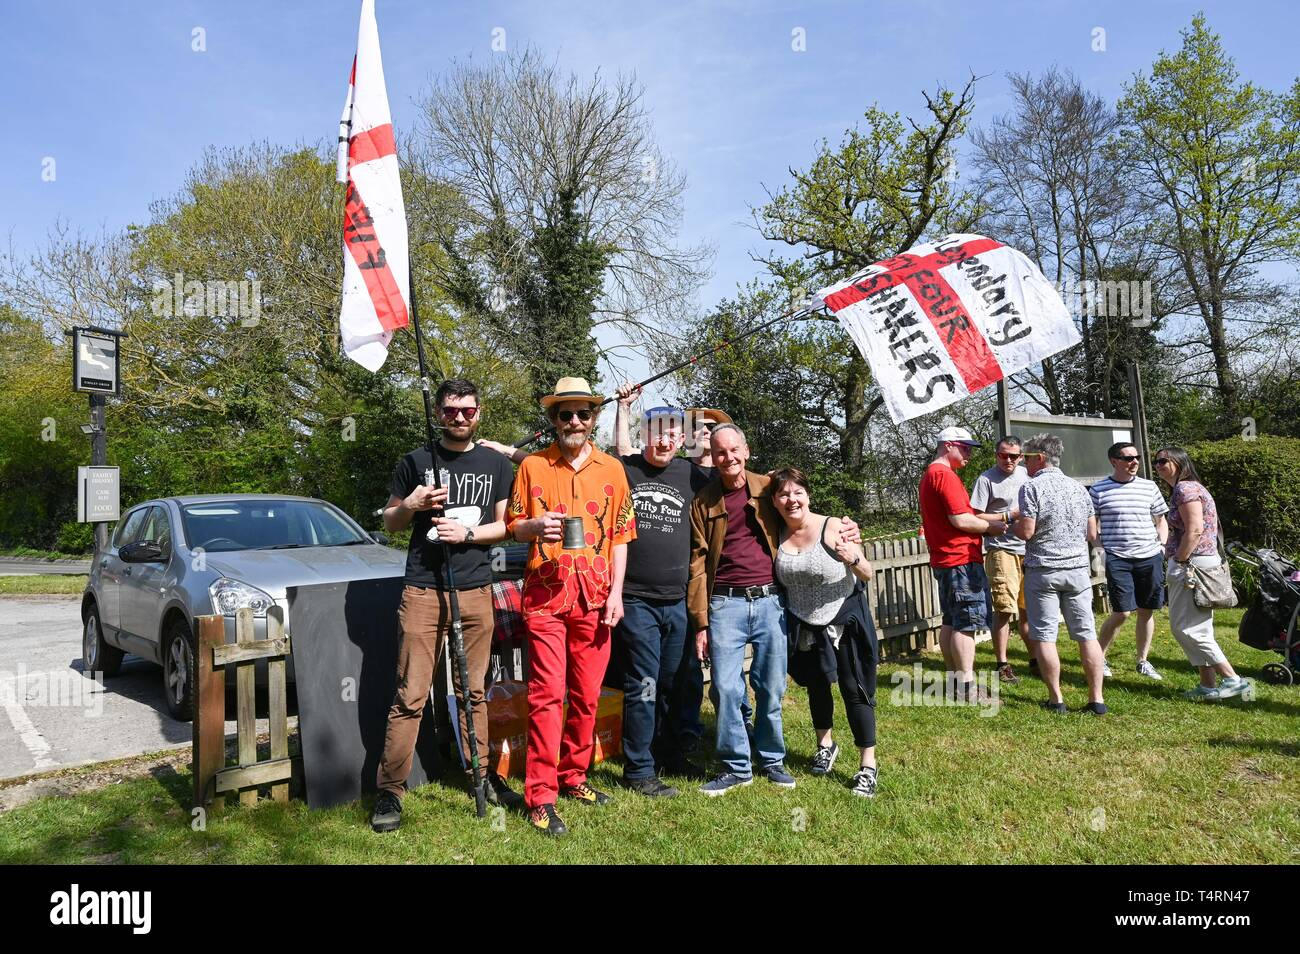 Crawley Sussex, UK. 19th Apr, 2019. The Fifty Four Shack Shakers in the World Marbles Championship held at The Greyhound pub at Tinsley Green near Crawley in Sussex . The annual event has been held on Good Friday every year since the 1930s and is open to players from around the world Credit: Simon Dack/Alamy Live News Stock Photo